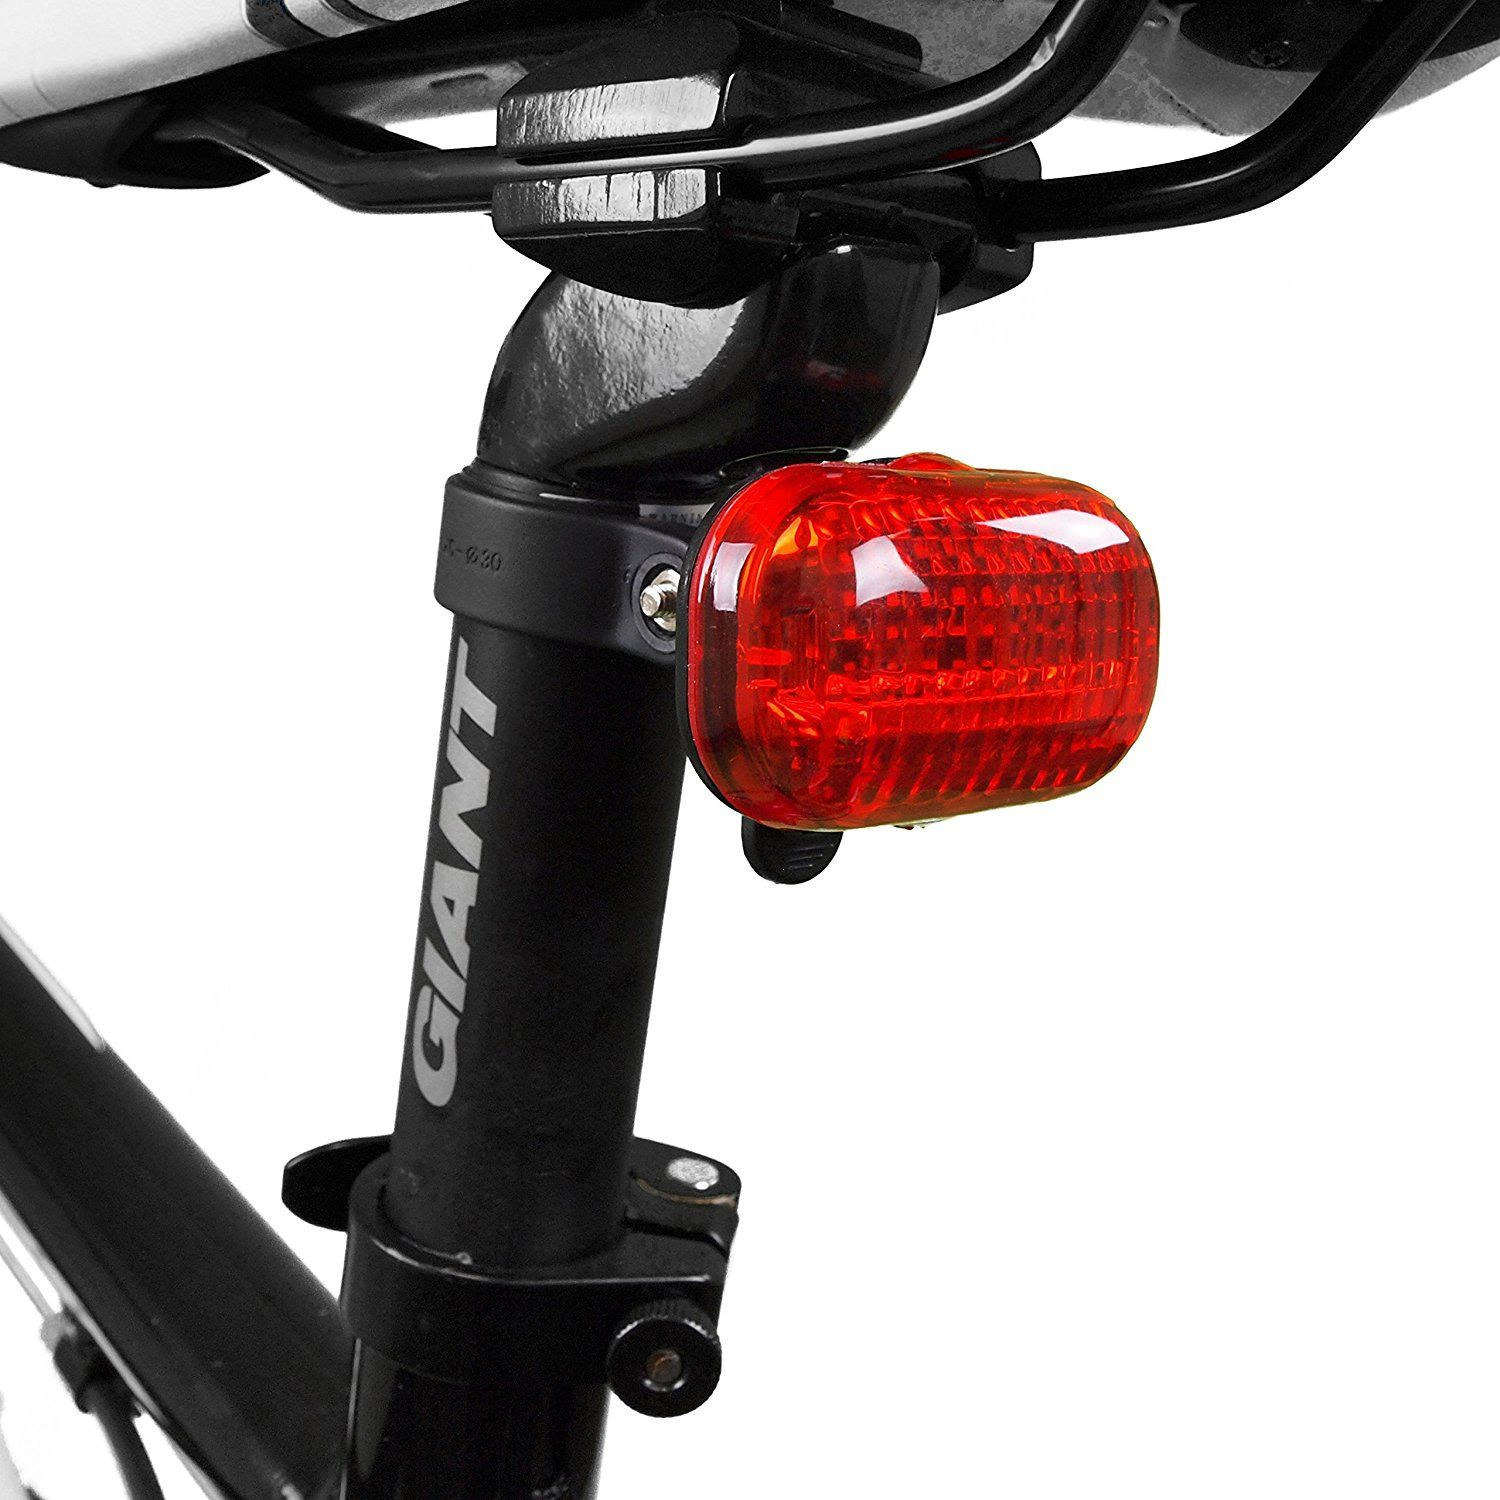 BV Bicycle Light Set Super Bright 5 LED Headlight 3 LED Taillight Quick-Release